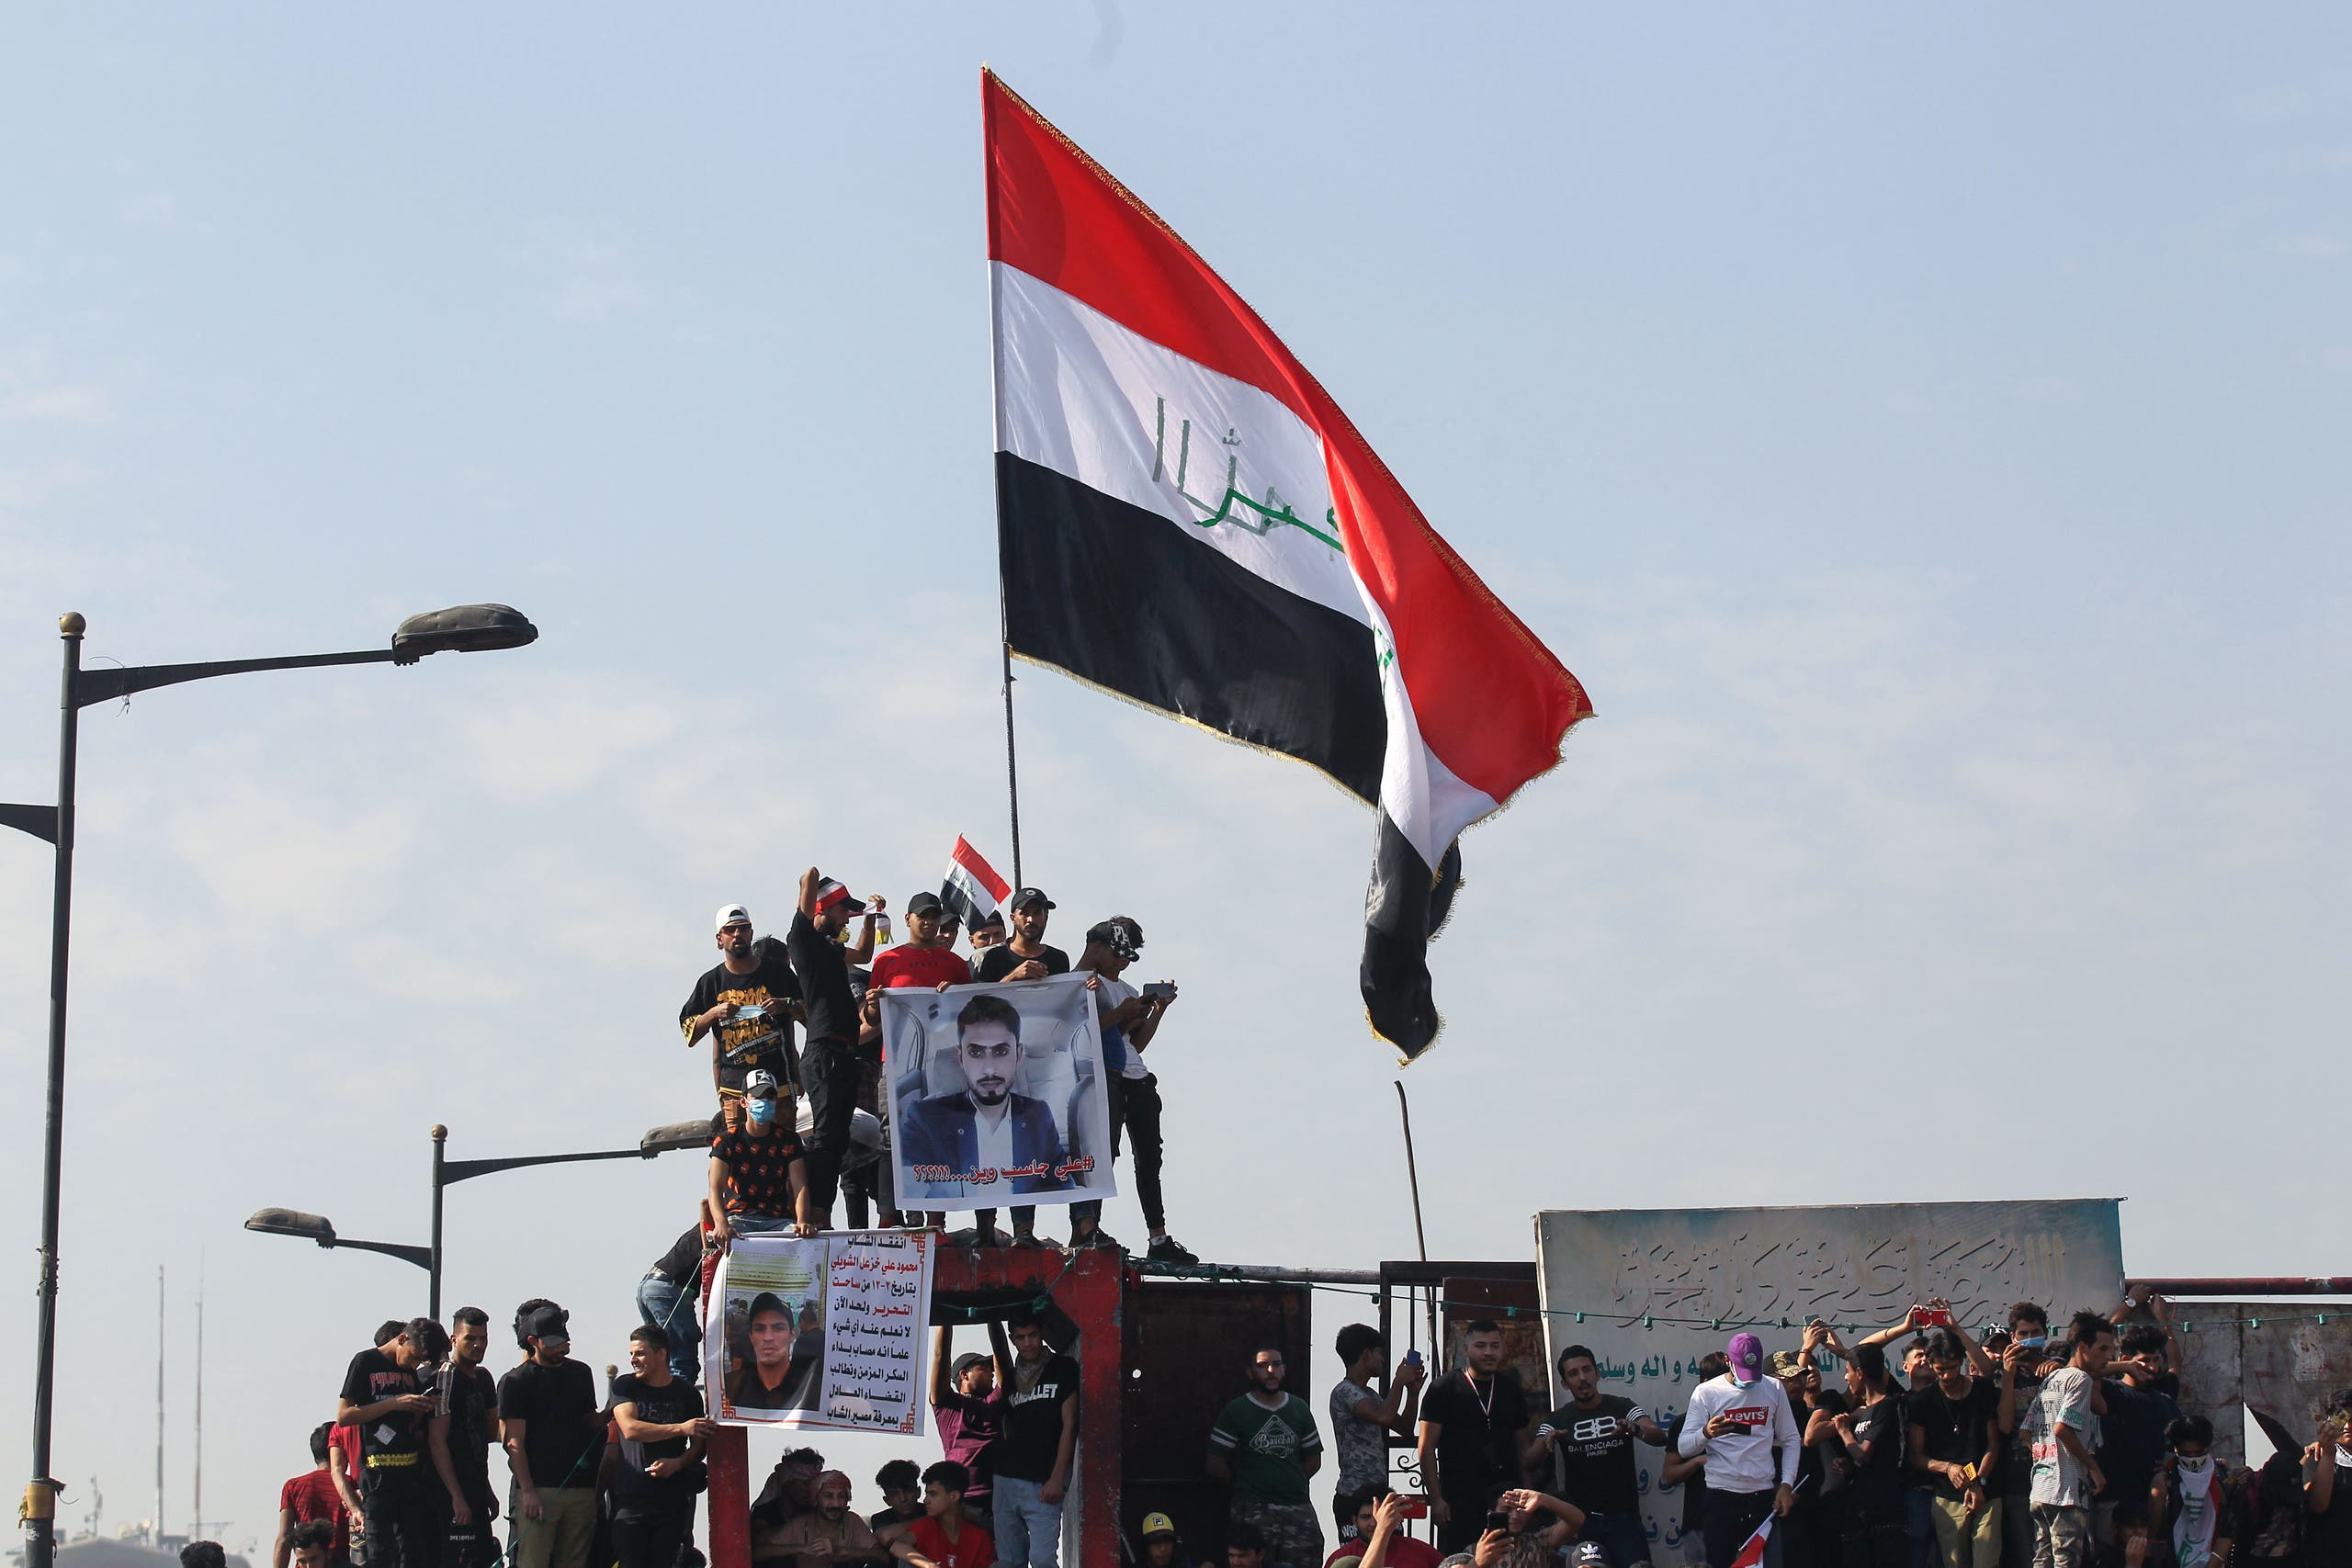 Iraqi protesters on Al-Jumhuriya Bridge in the capital Baghdad on October 25, 2020. (AFP)